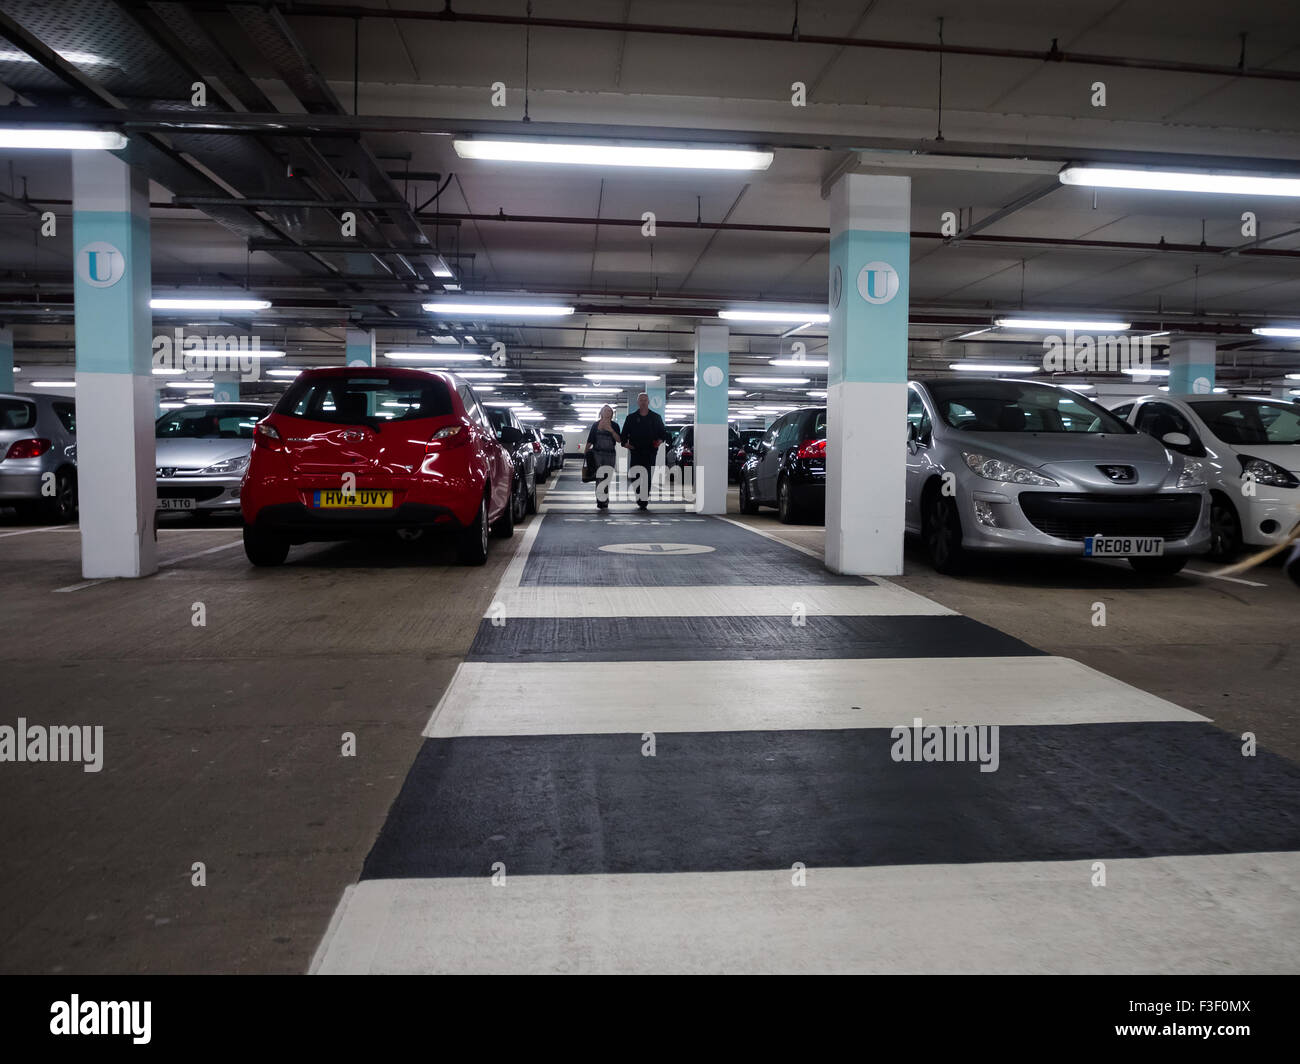 A zebra crossing in an underground multistory car park - Stock Image